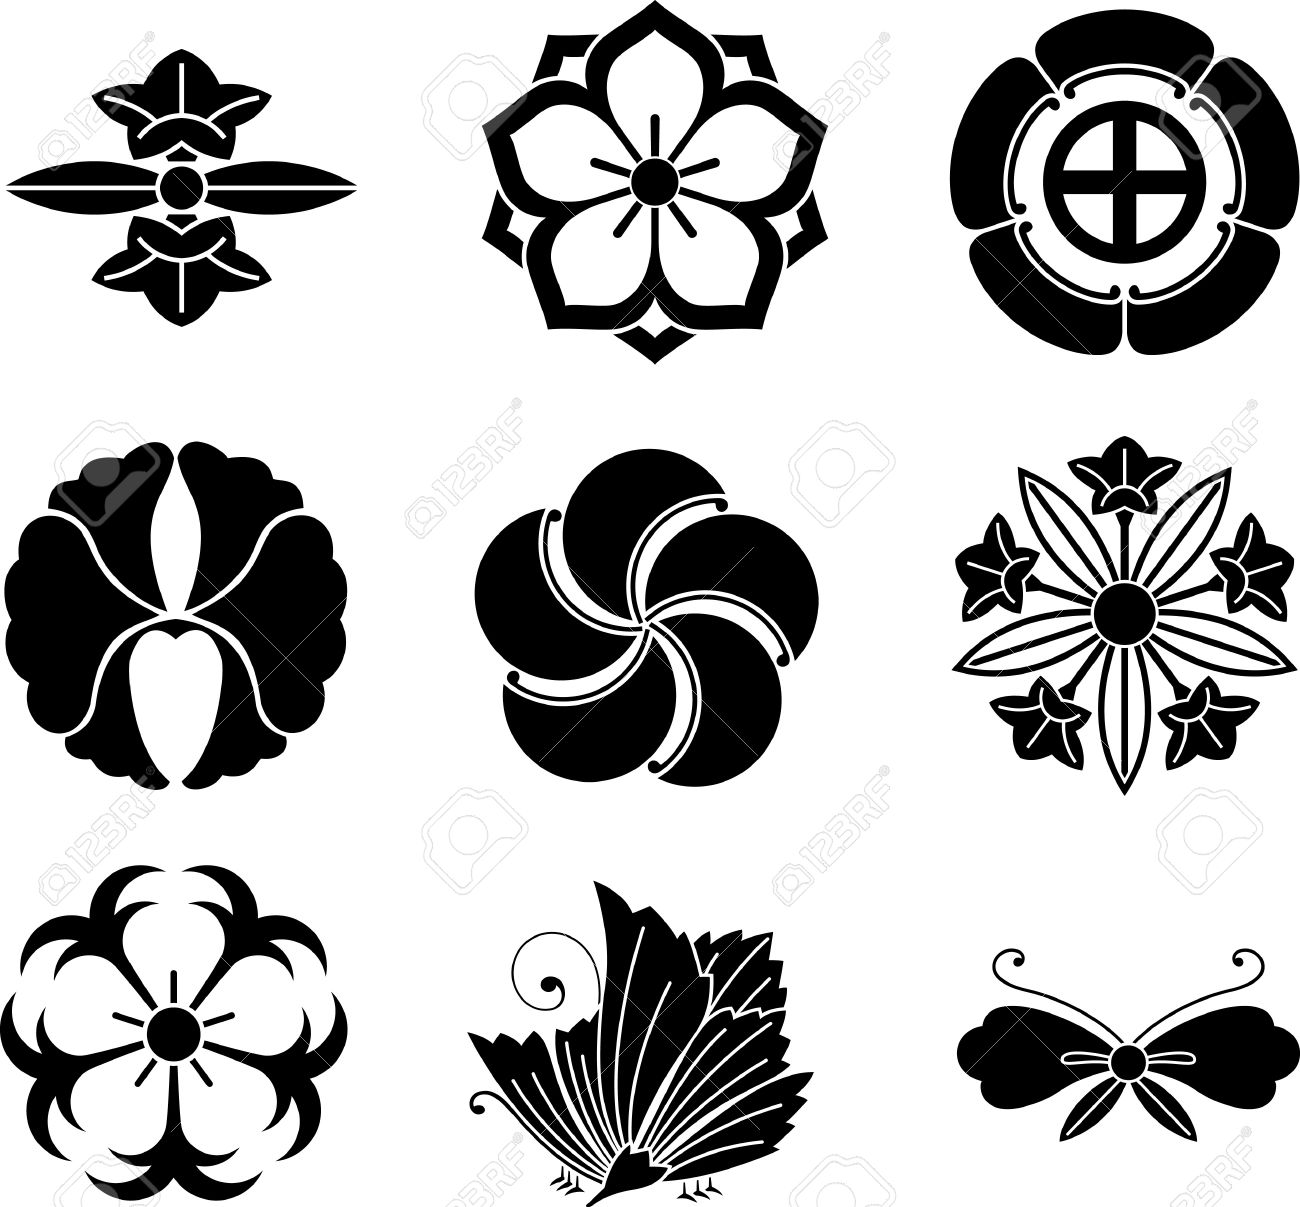 Japanese flower symbols gallery symbol and sign ideas japanese family crests royalty free cliparts vectors and stock japanese family crests stock vector 9379672 buycottarizona biocorpaavc